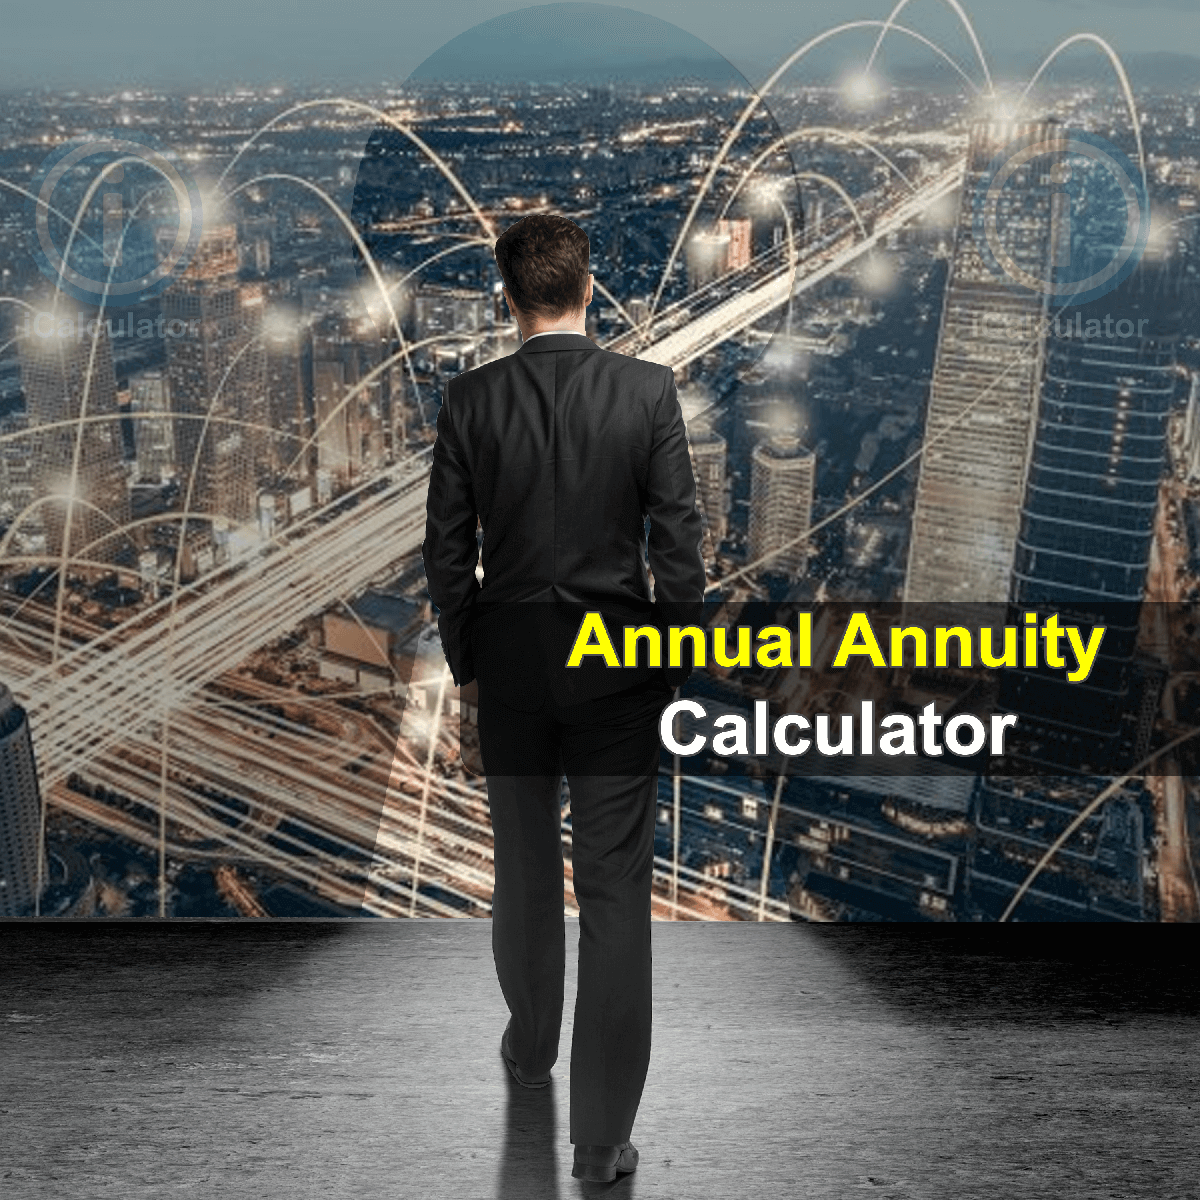 Equivalent Annual Annuity Calculator. This image provides details of how to calculate the equivalent annual annuity using a calculator and notepad. By using the equivalent annual annuity formula, the Equivalent Annual Annuity Calculator provides a true calculation of the evaluation of projects that have unequal life spans.